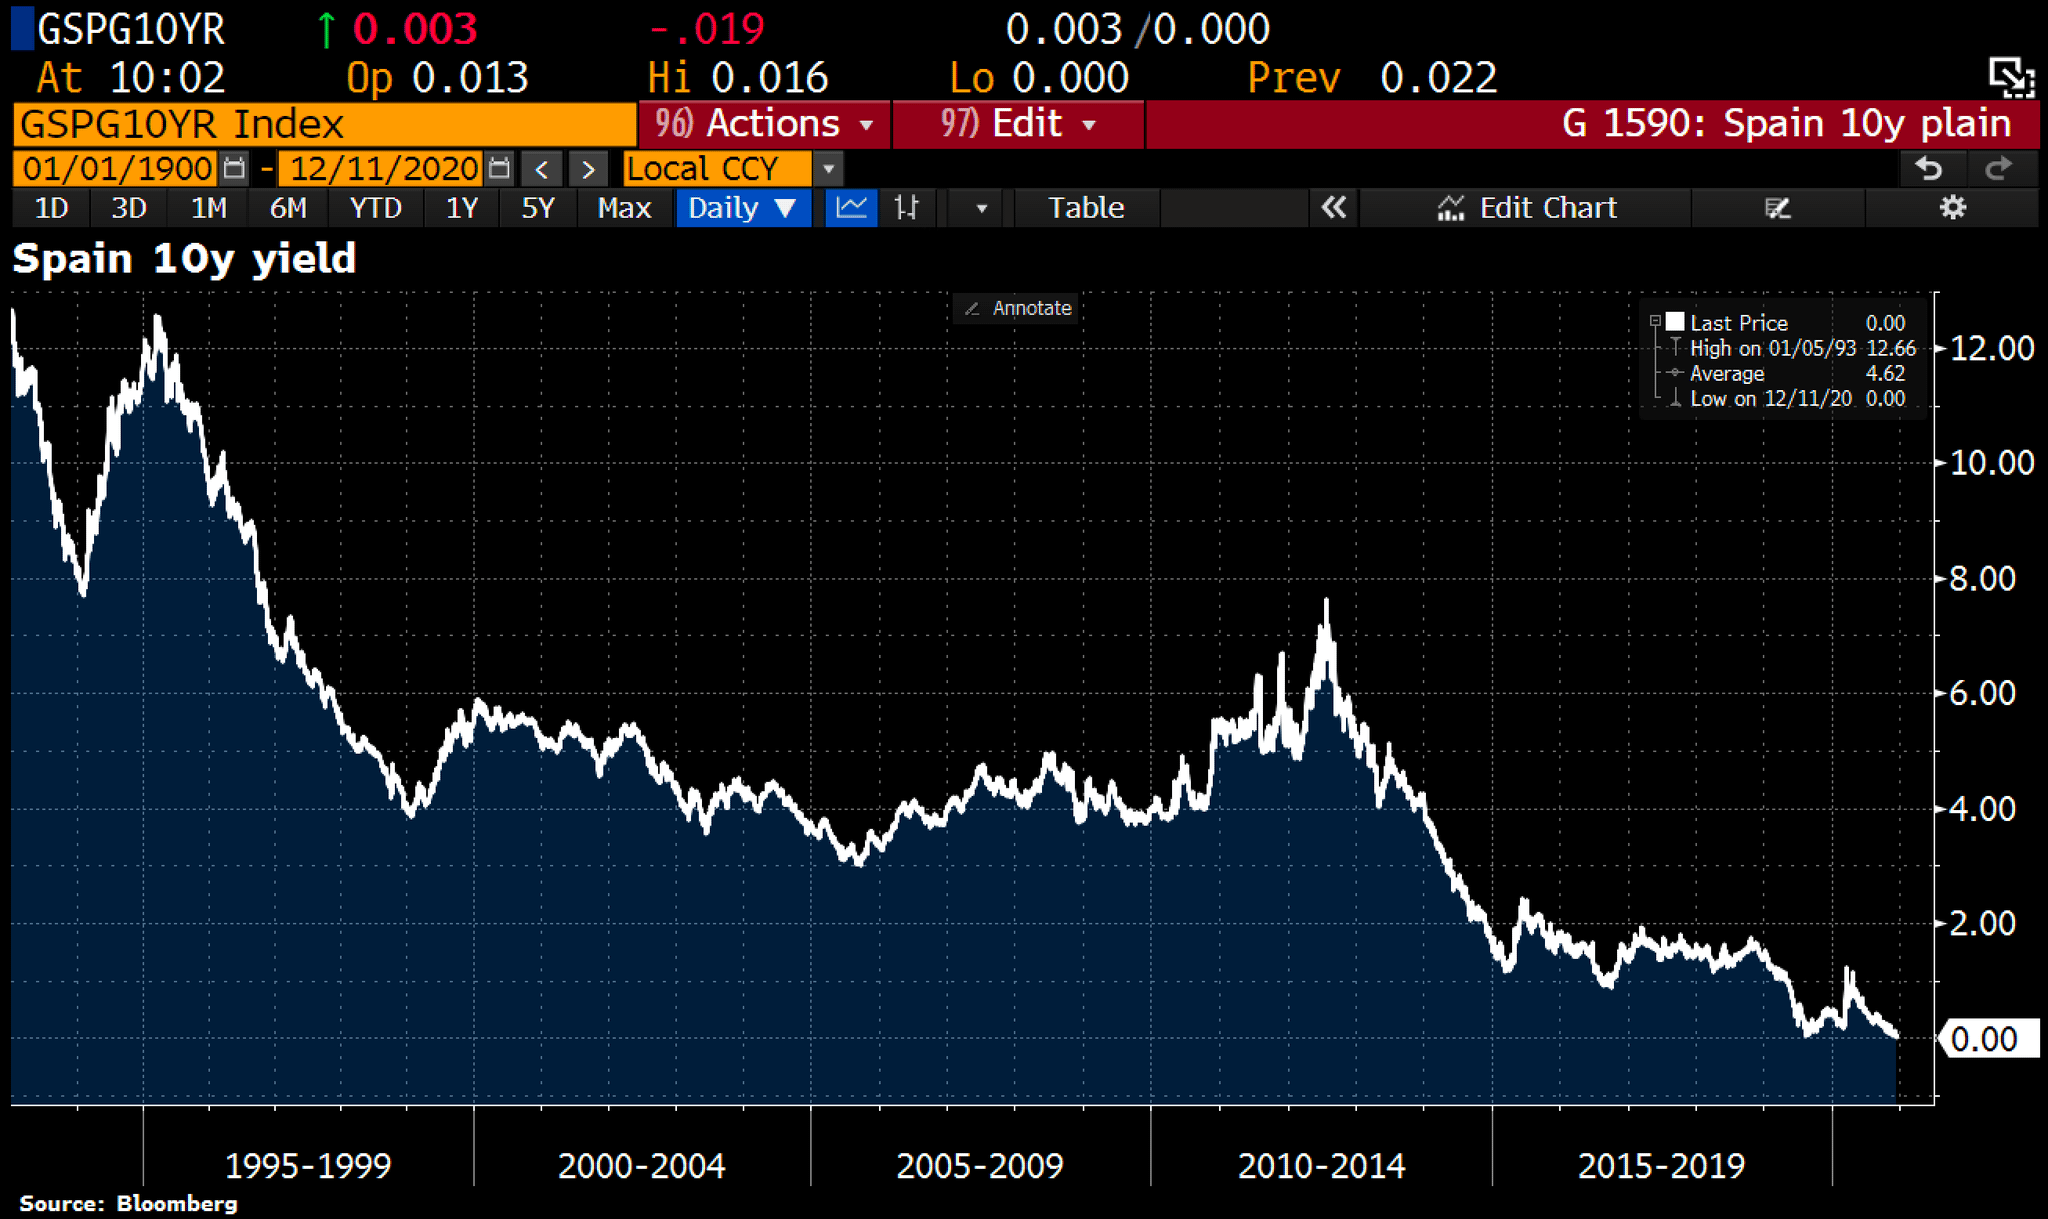 And there goes Spain - 10yr bond yields drop to 0% for the 1st time